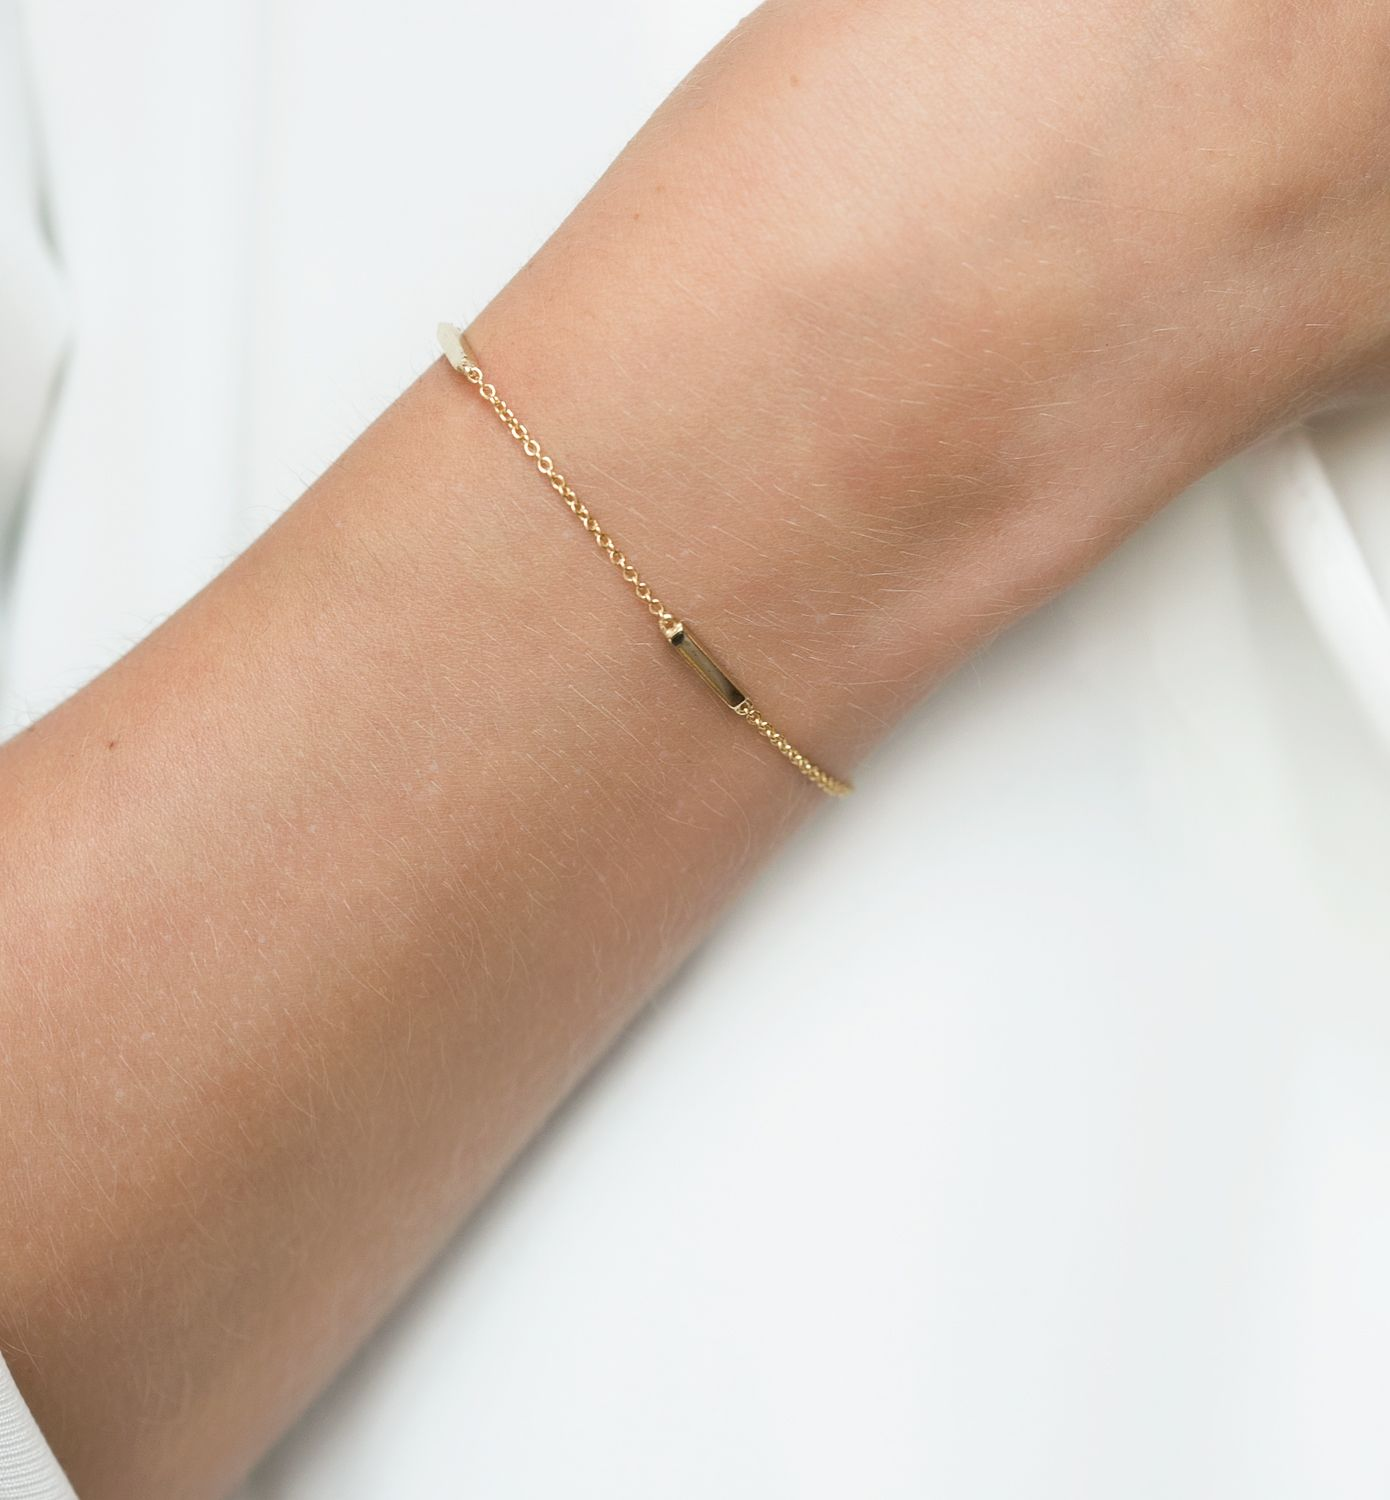 personalized fullxfull best p dainty il gold bracelet friend friendship jewelry